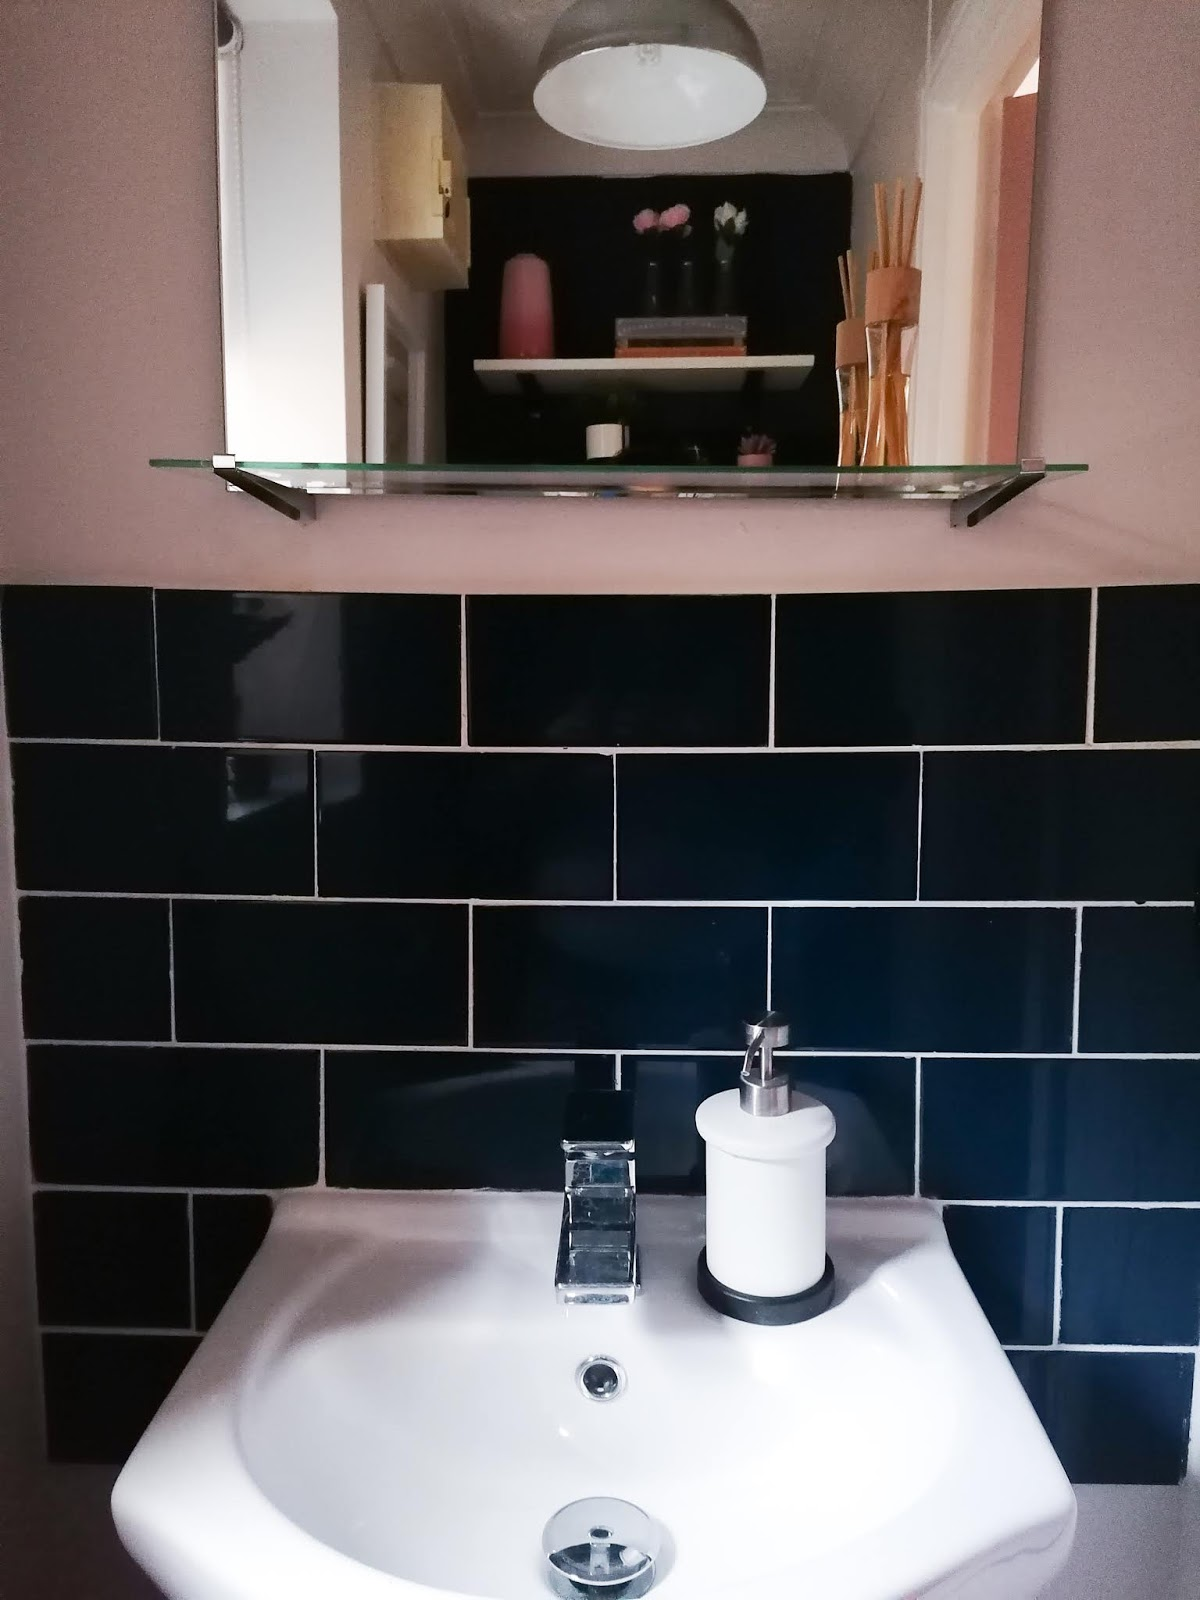 Downstairs cloakroom renovation on a budget